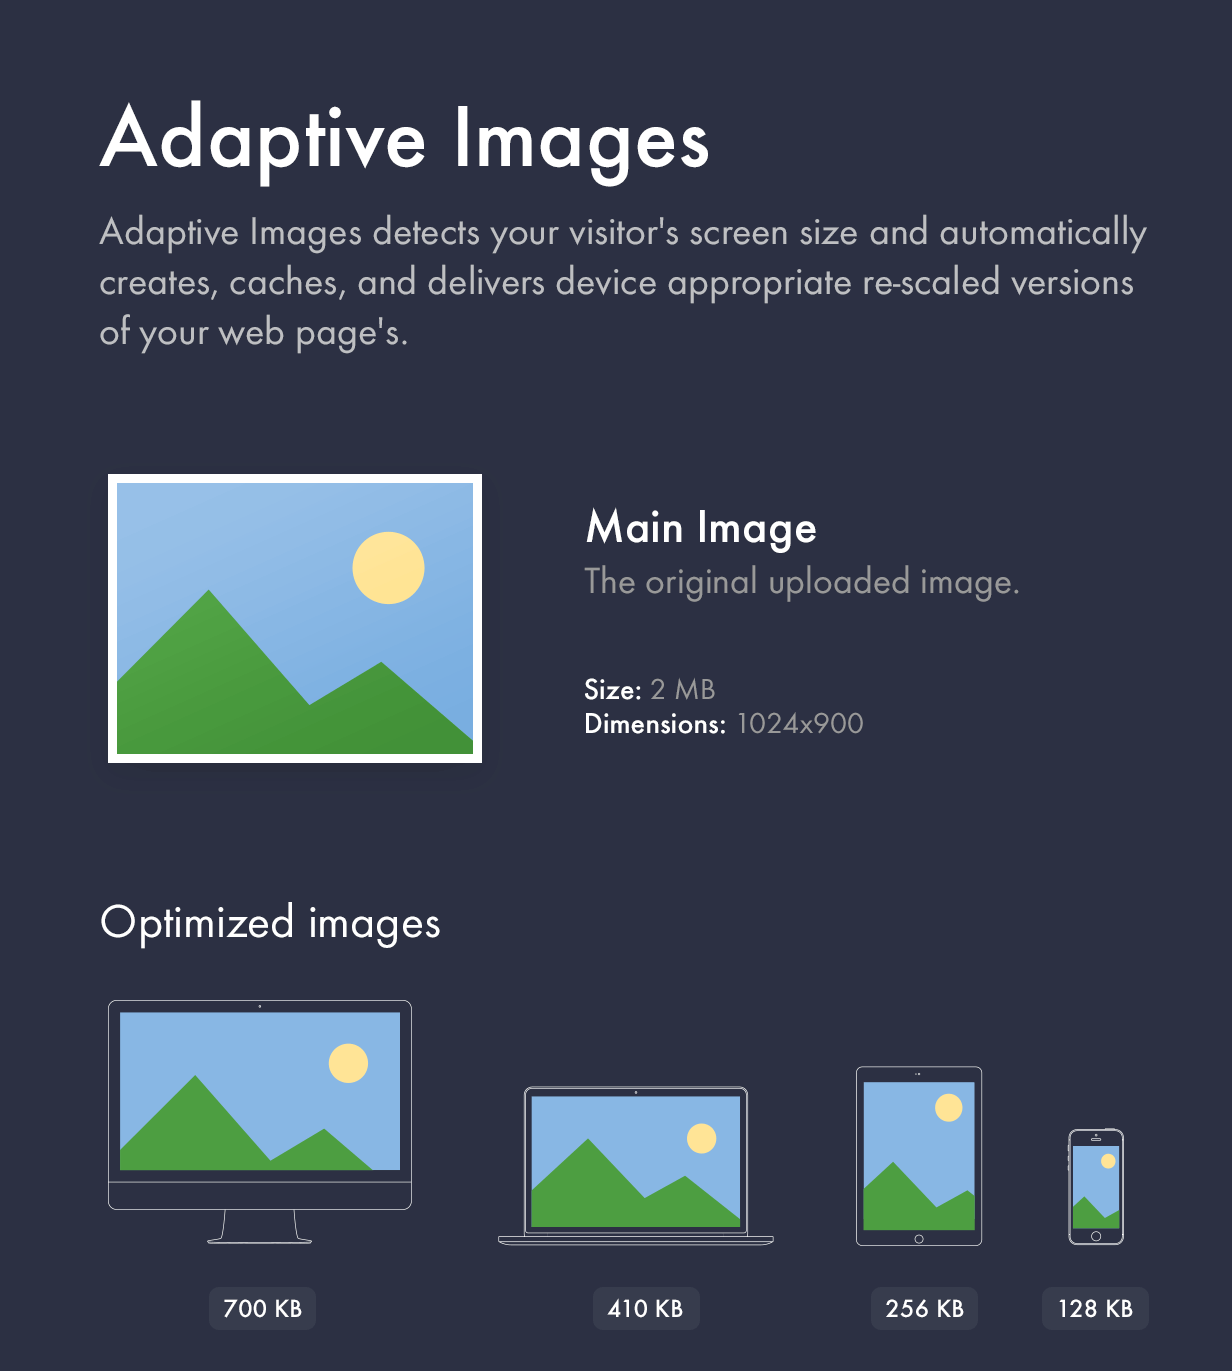 Adaptive Images technology